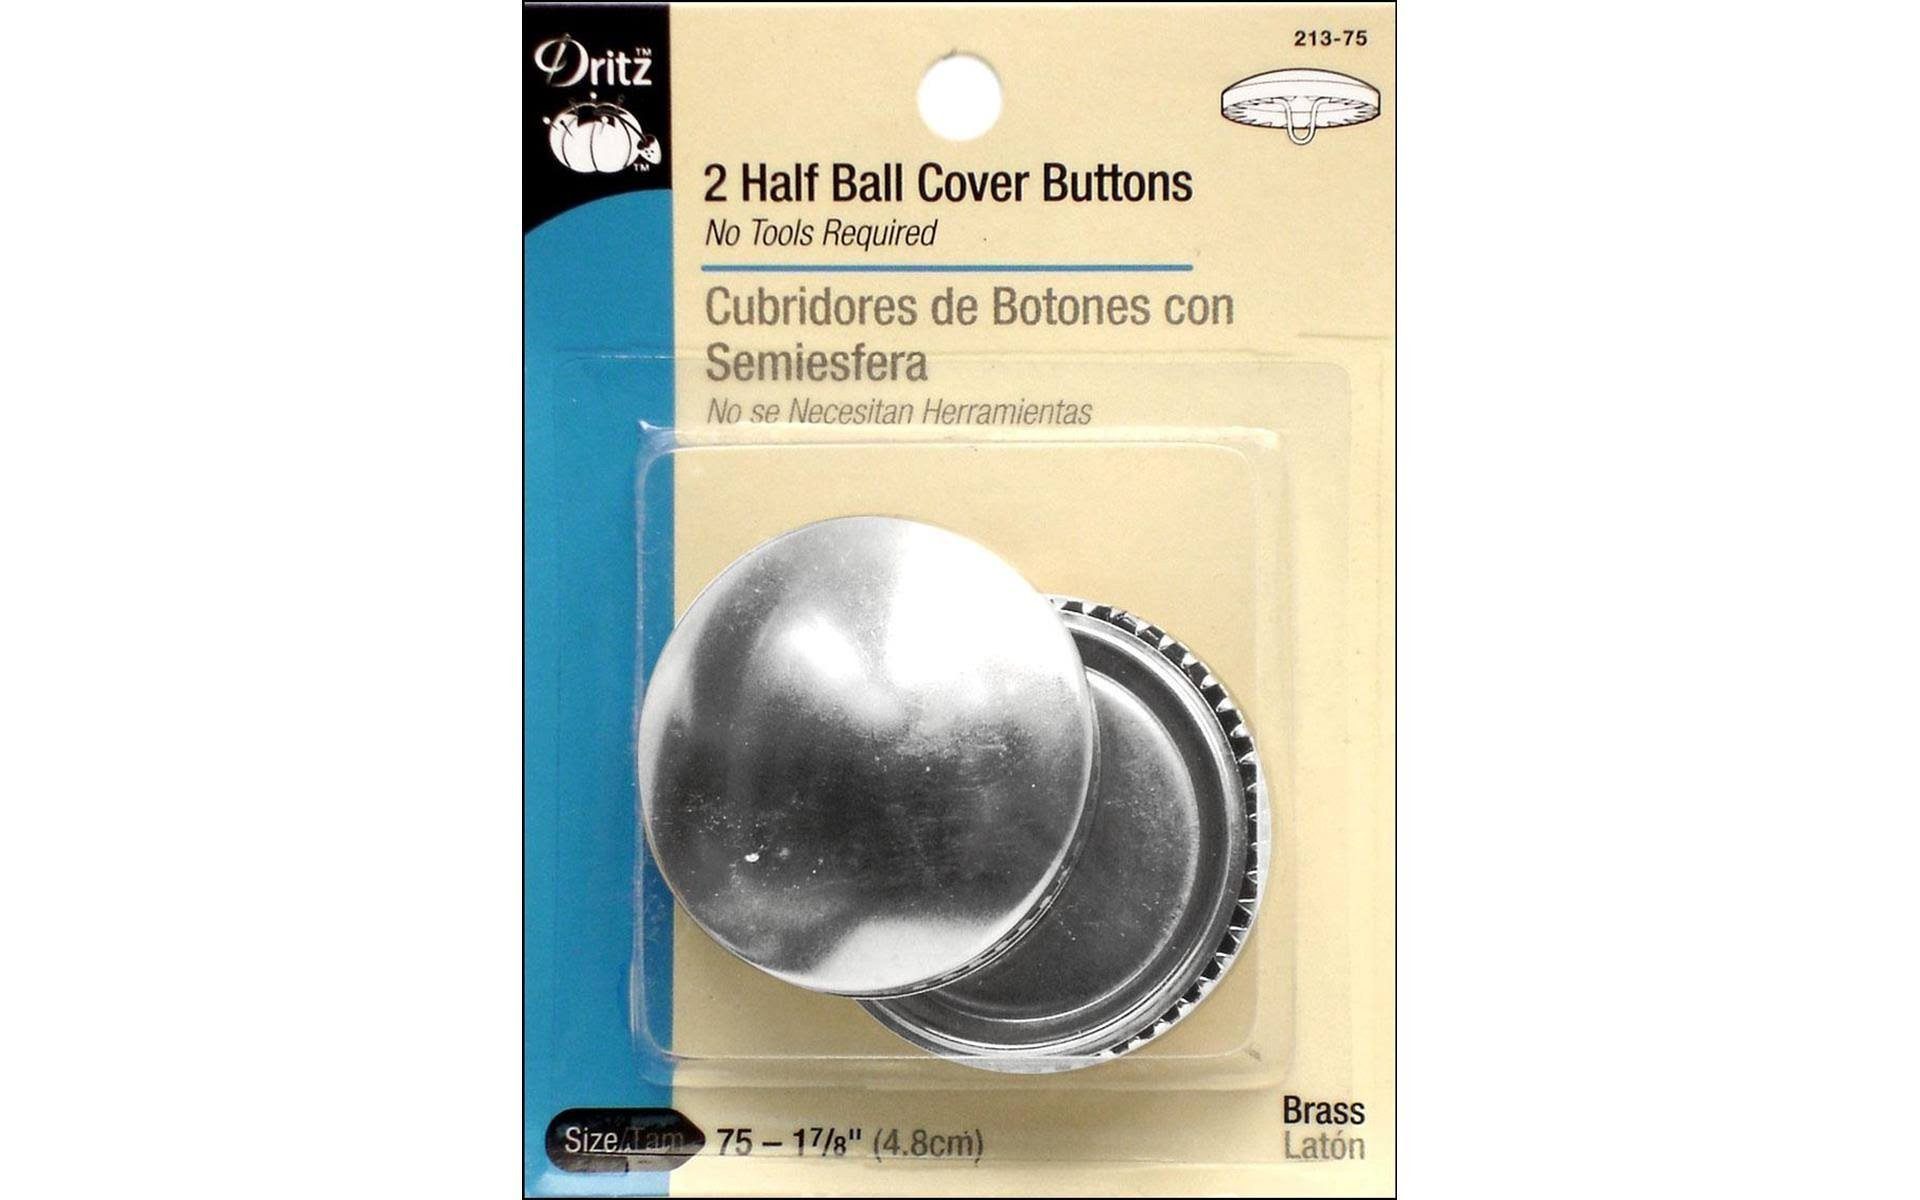 2 Half Ball Cover Buttons by Dritz